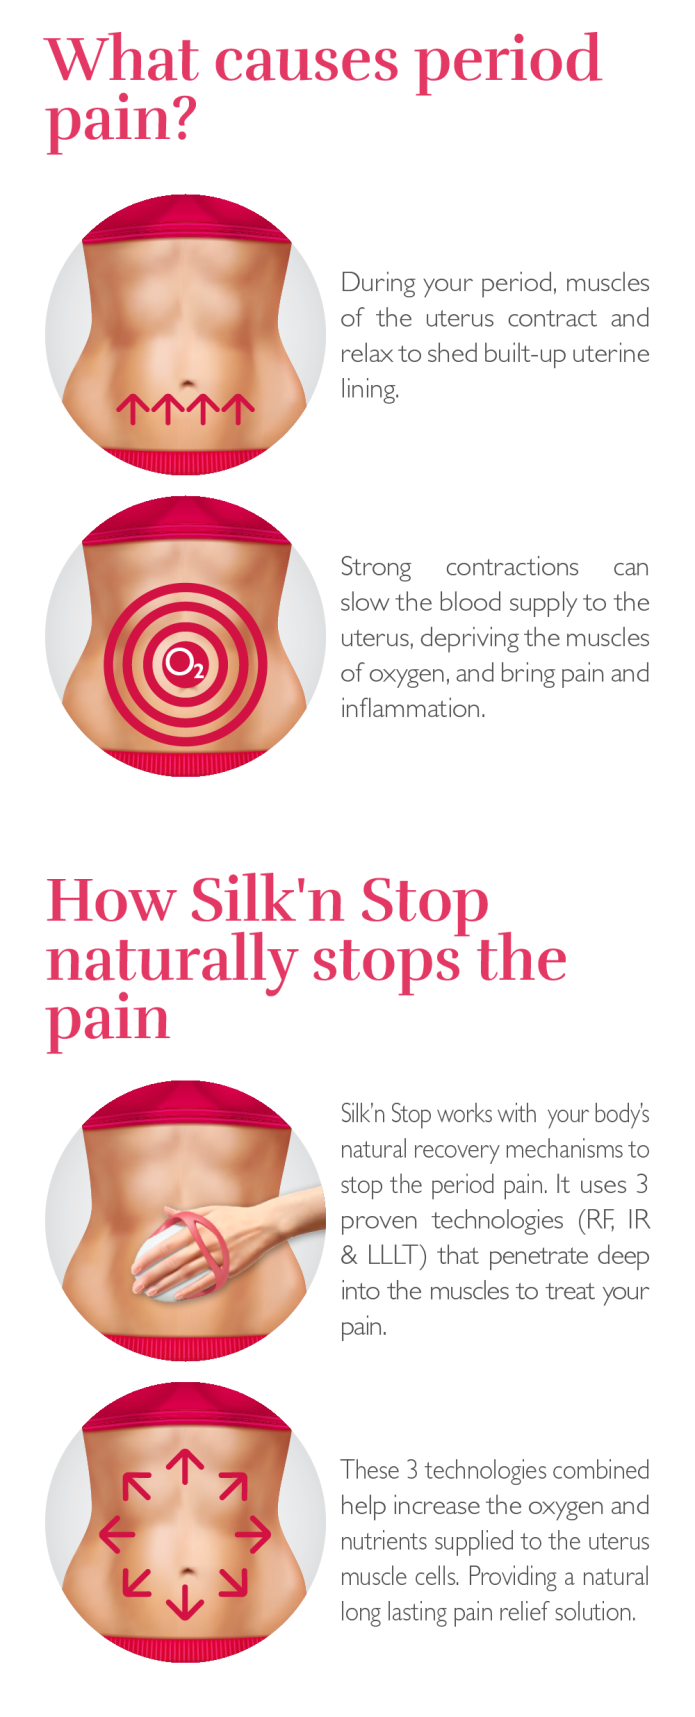 silk'n stop - for a pain-free period | indiegogo